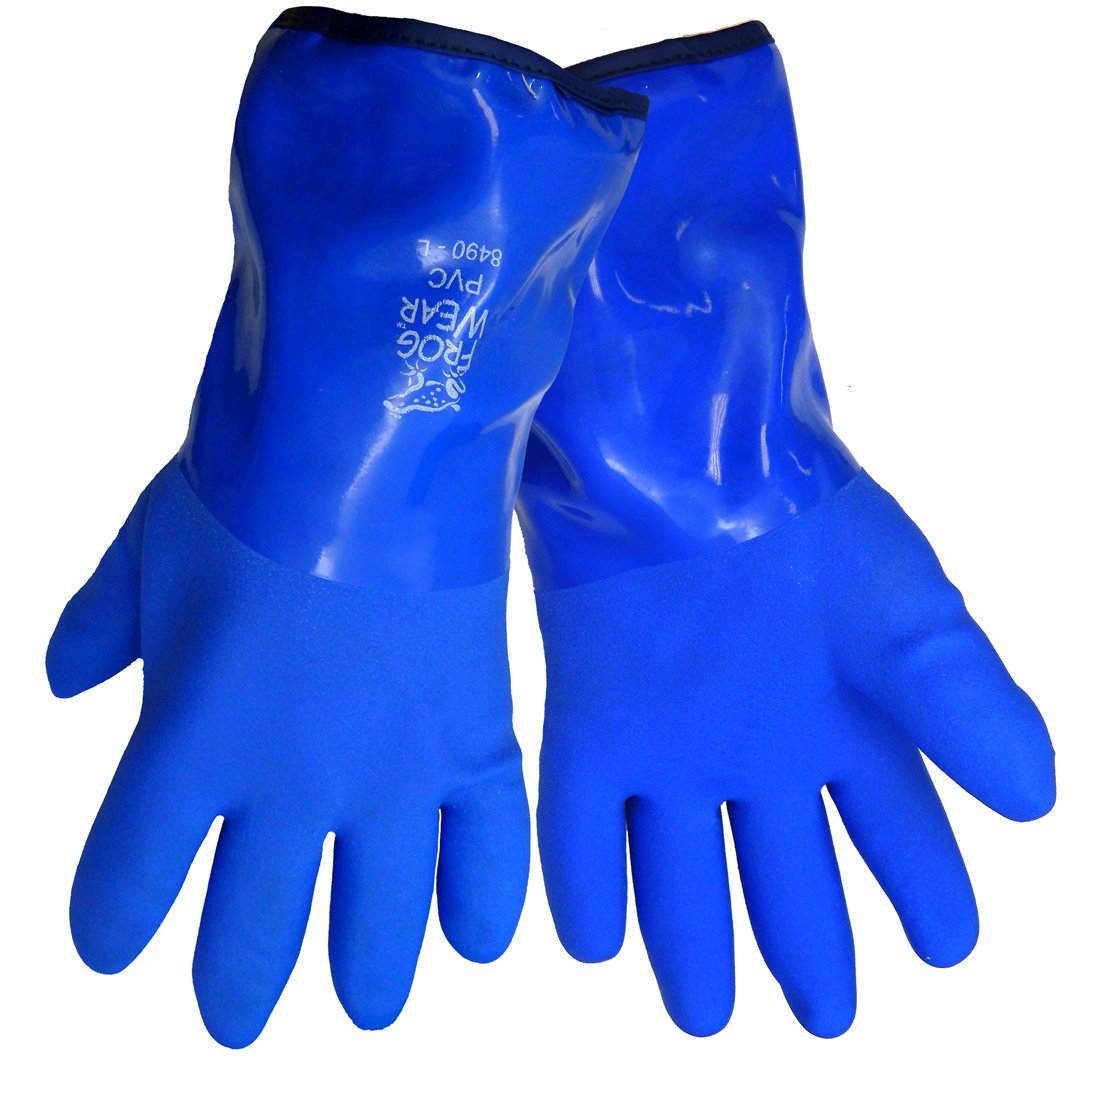 Global Glove 8490 FrogWear Insulated Flexible PVC Glove, Chemical Resistent, Extra Large, Blue (Case of 72)